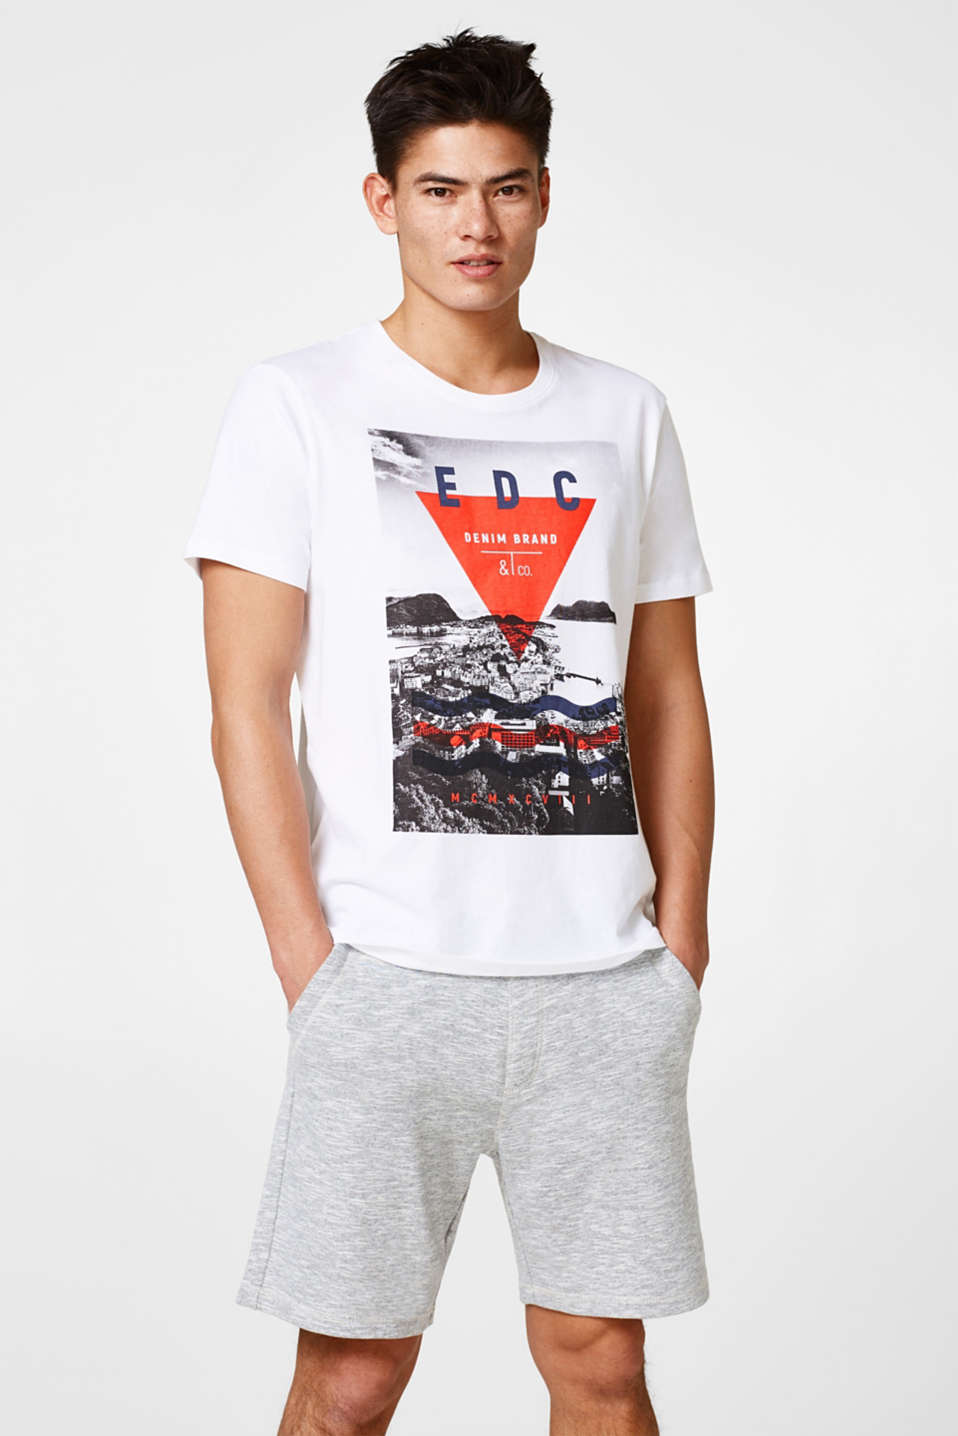 edc - T-shirt en jersey chiné à imprimé photo, coton